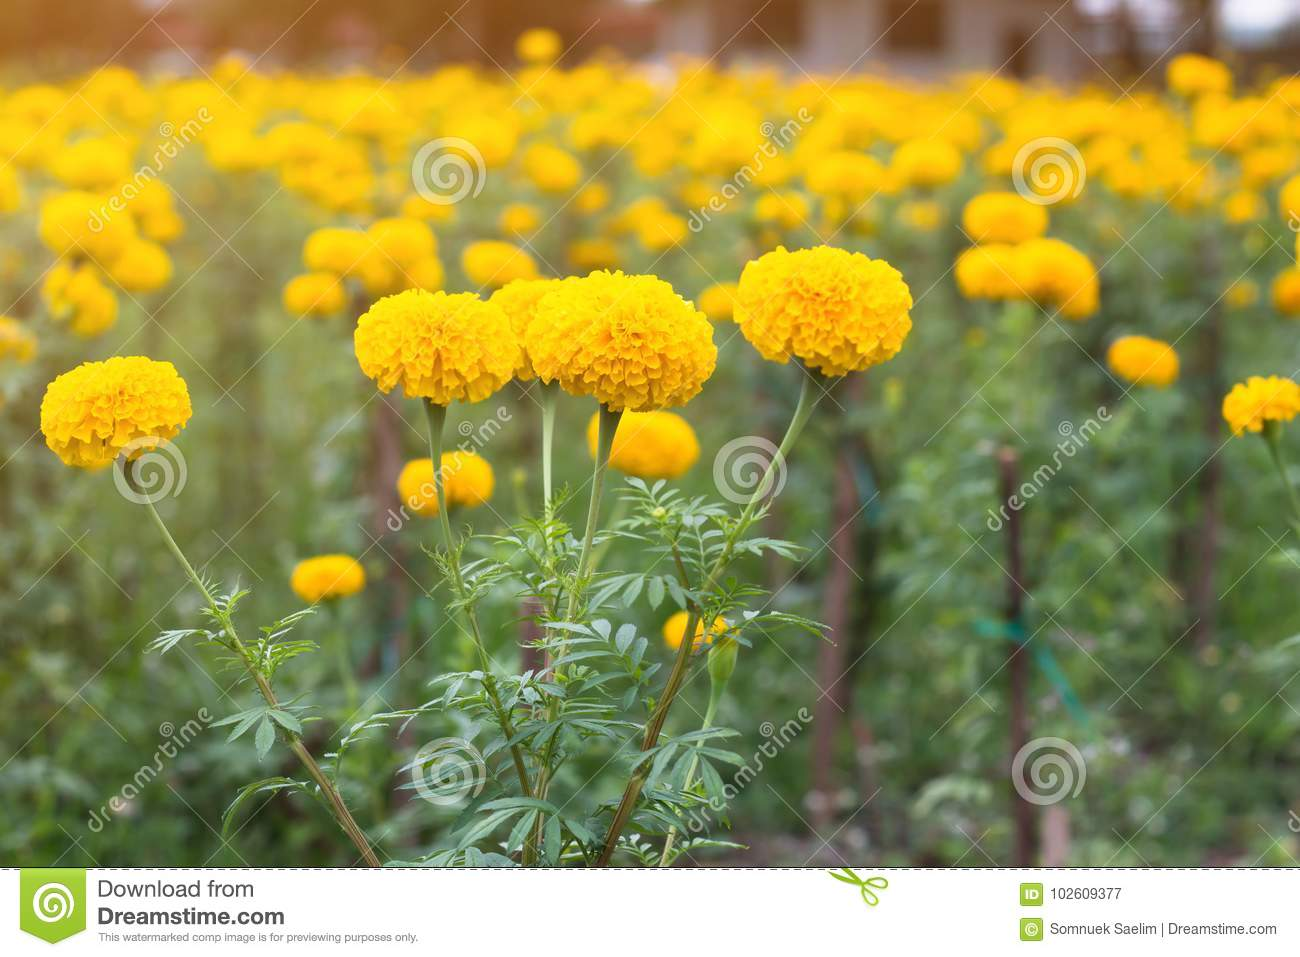 Marigold flower fieldspring season yellow flowersyellow flower download comp mightylinksfo